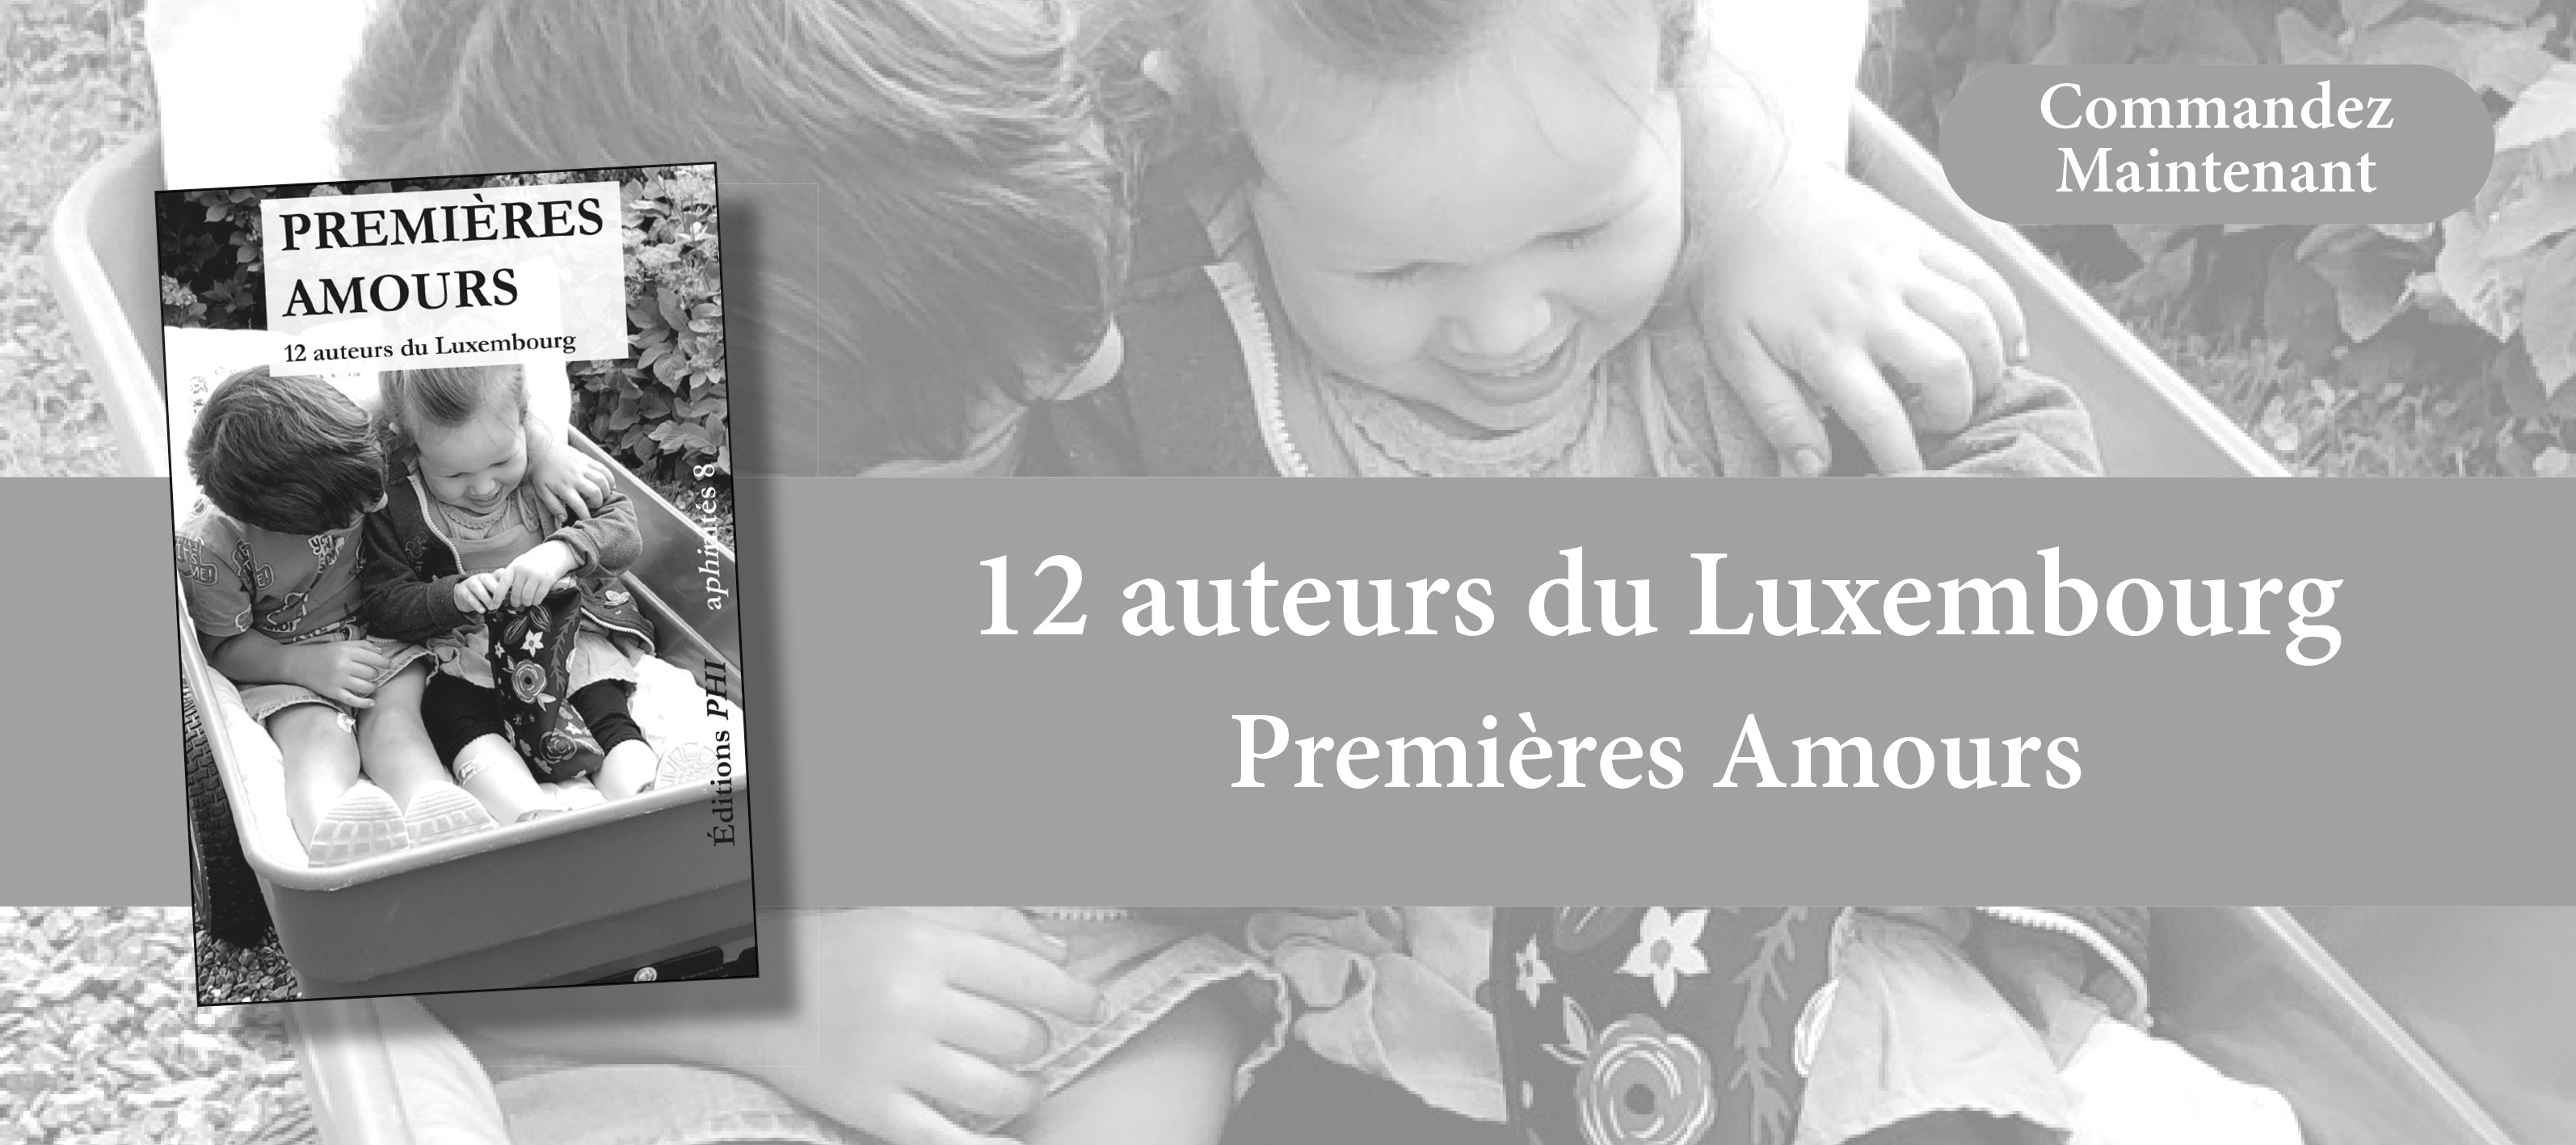 http://www.editionsphi.lu/fr/francais/494-aphinites-premieres-amours.html